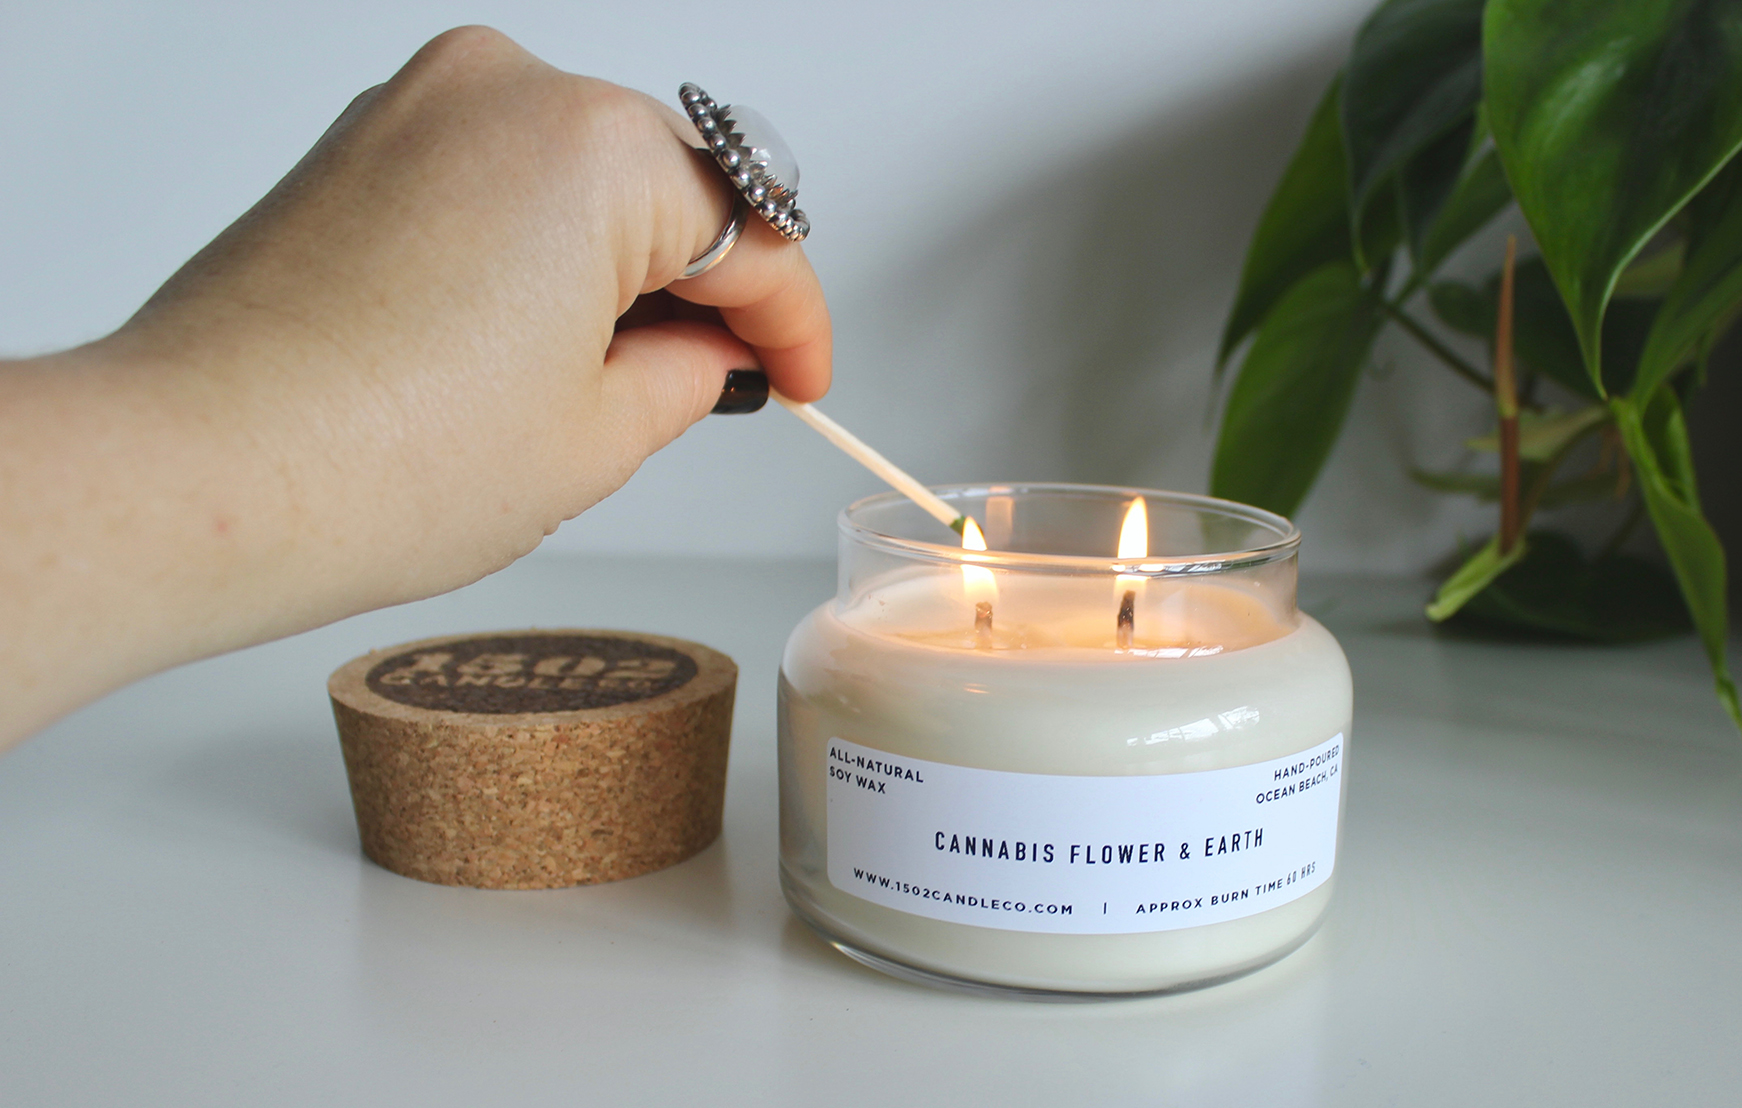 cannabis flower & earth soy wax candle